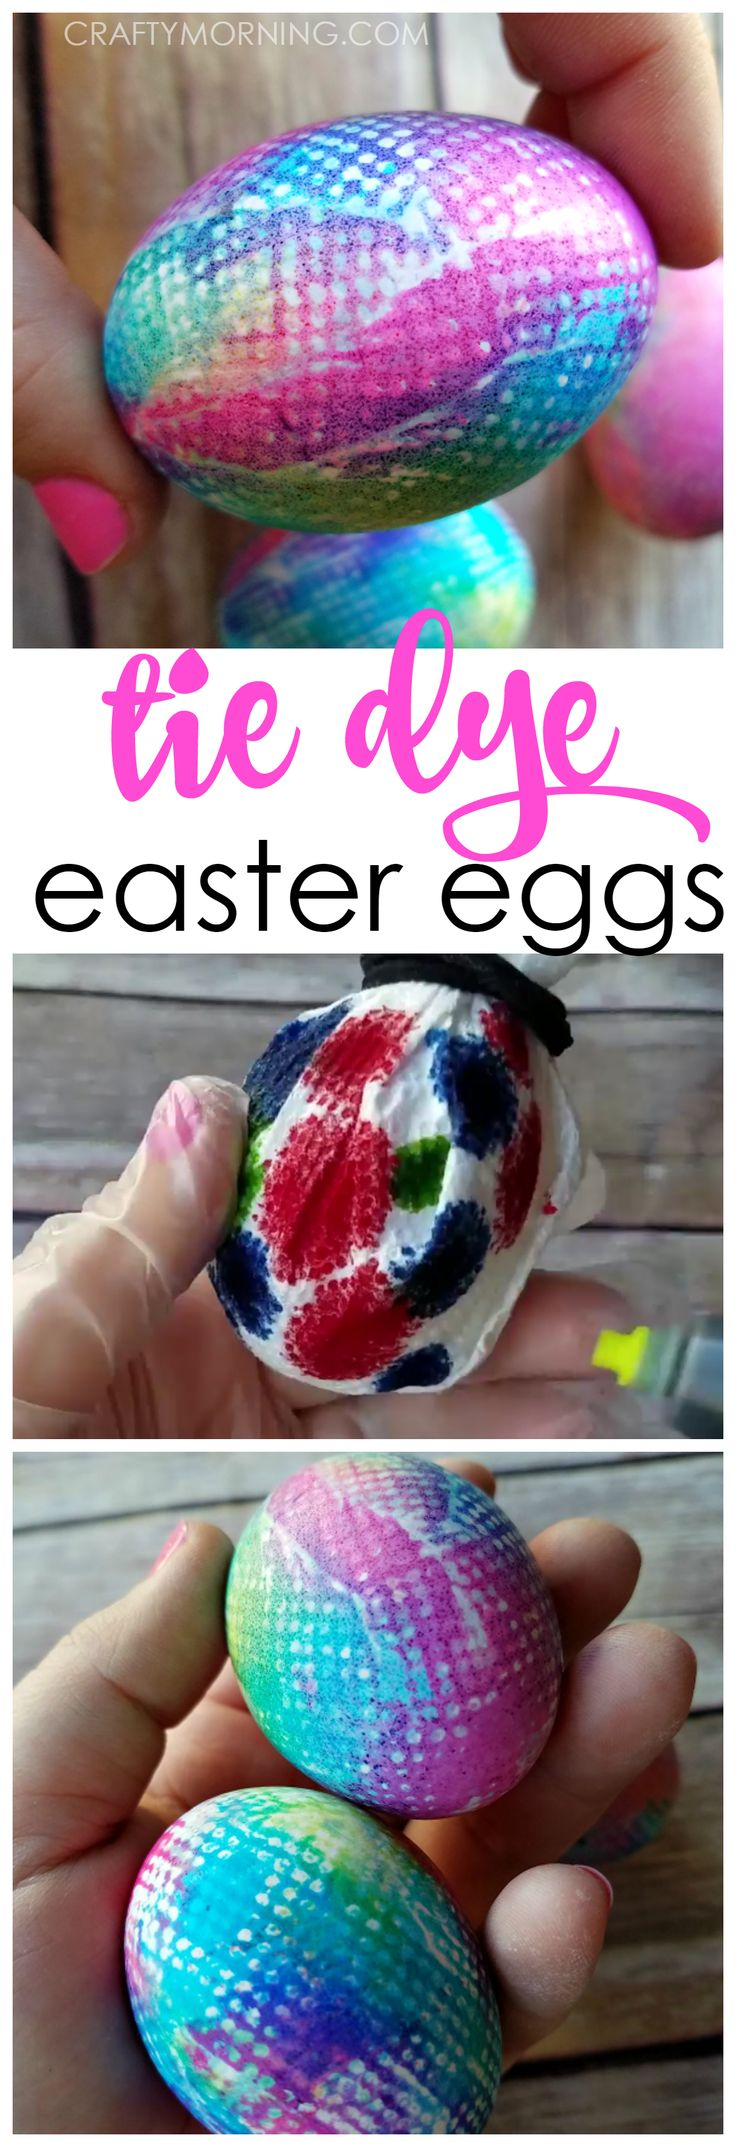 Beautiful tie dye easter egg decorating! Fun and unique way for the kids to dye eggs.